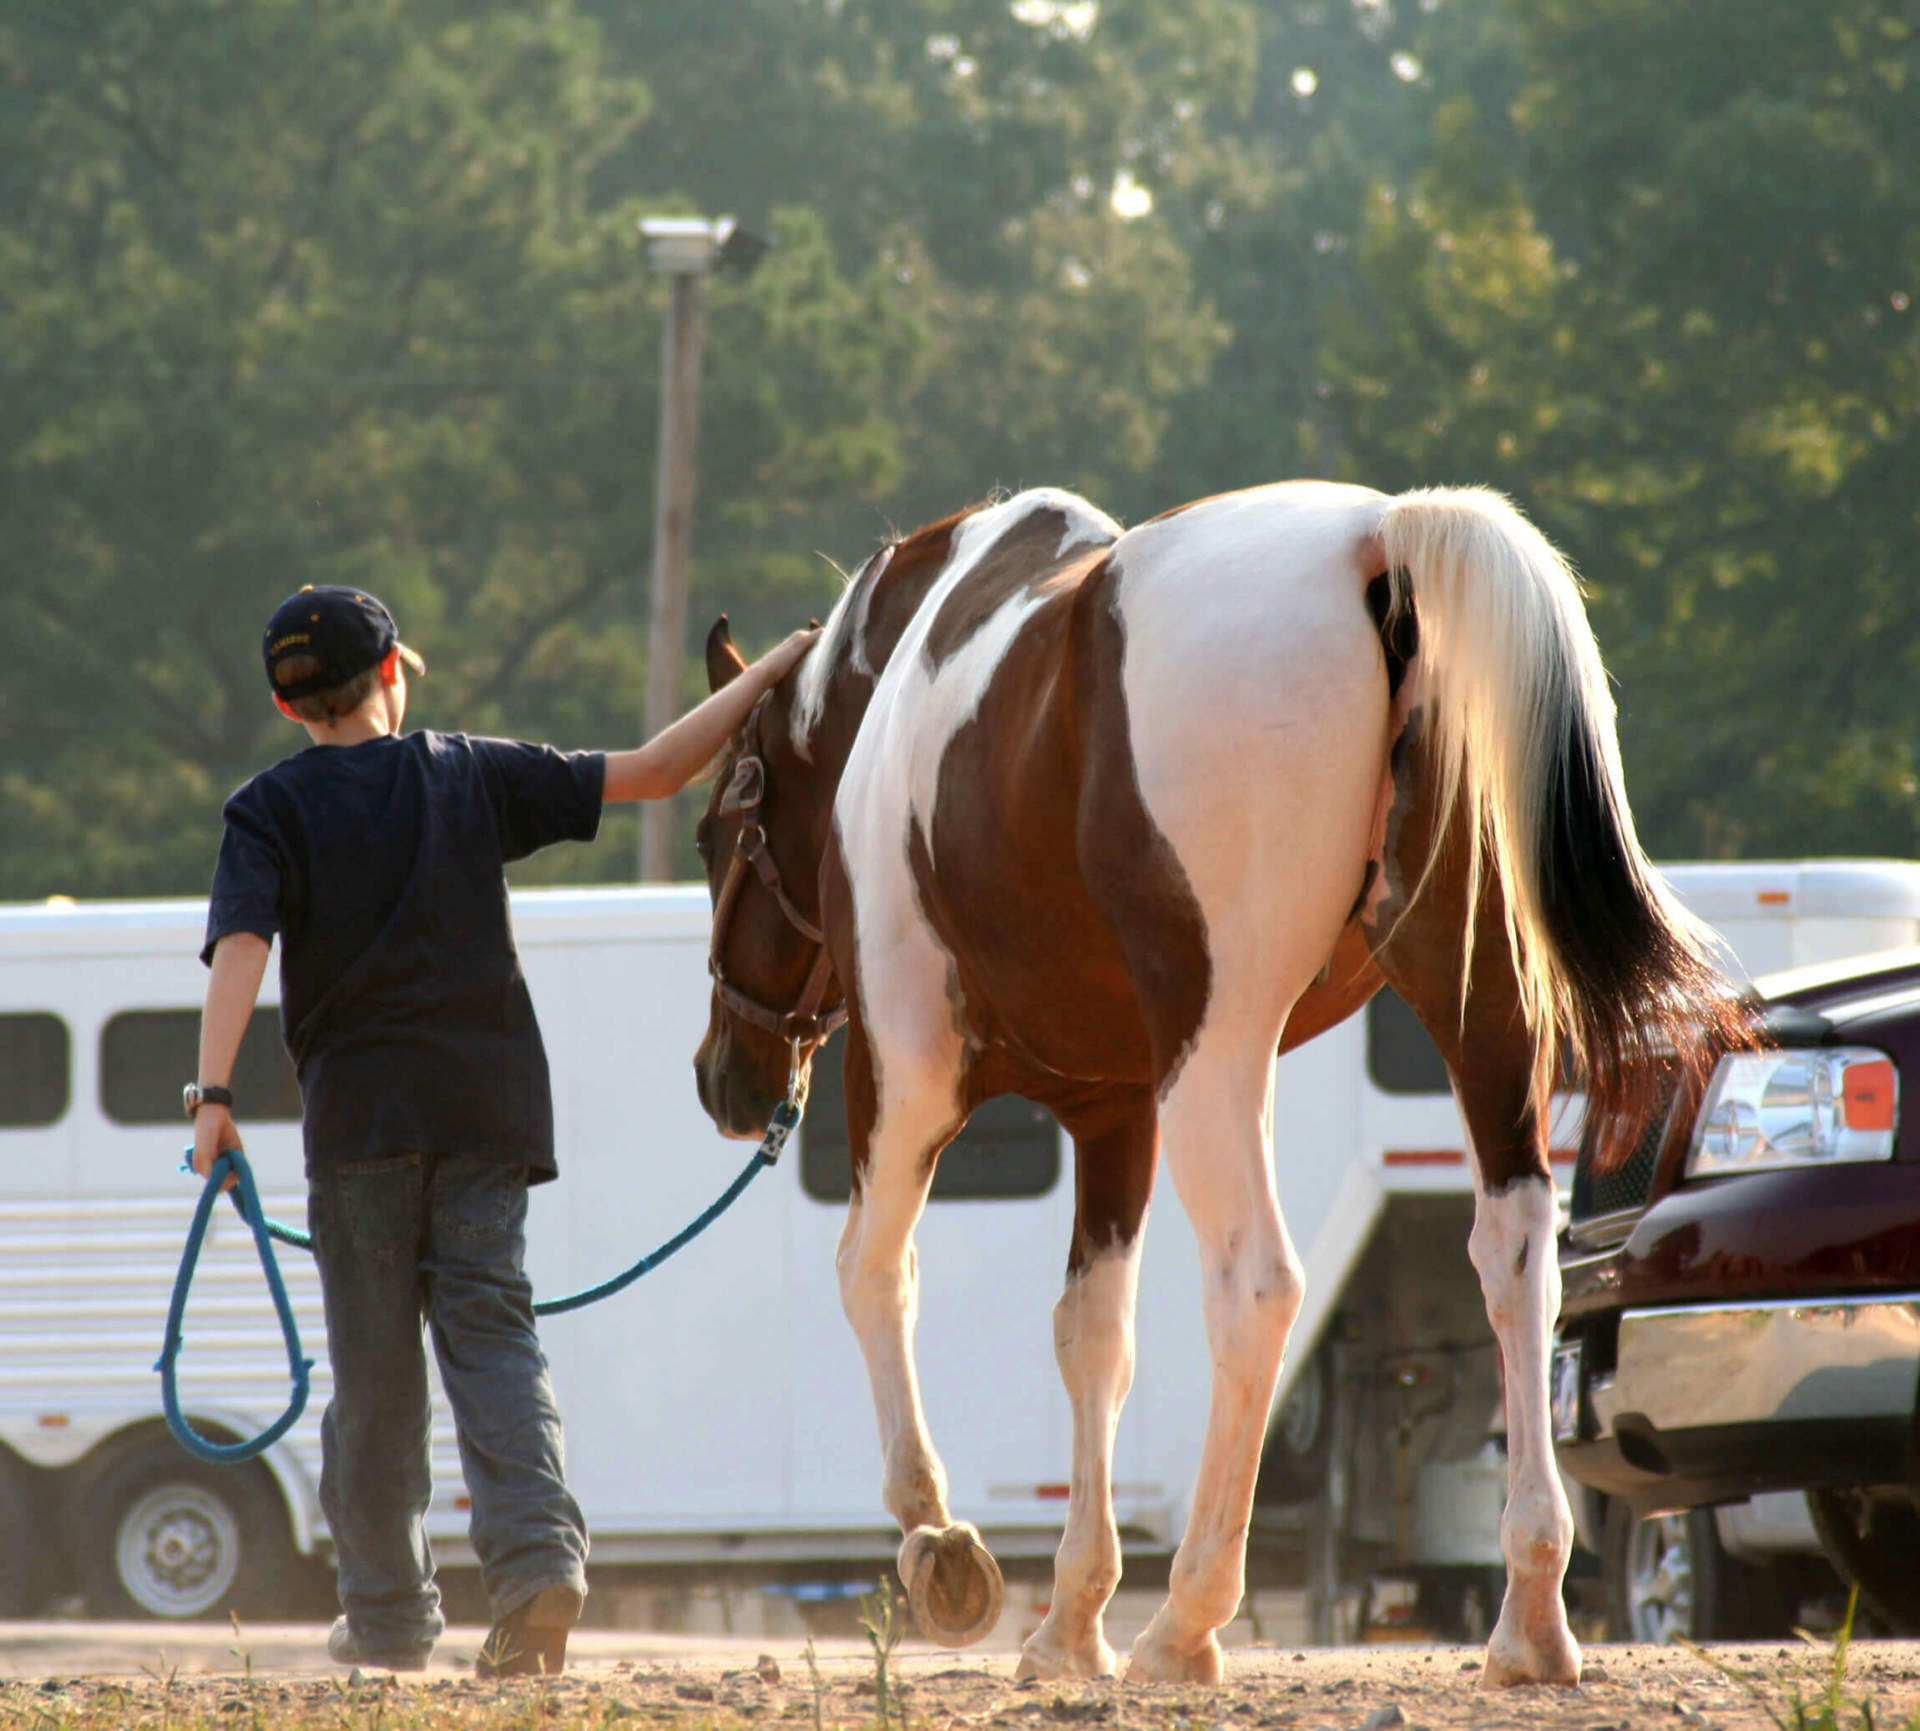 Rehabilitating the Injured Horse